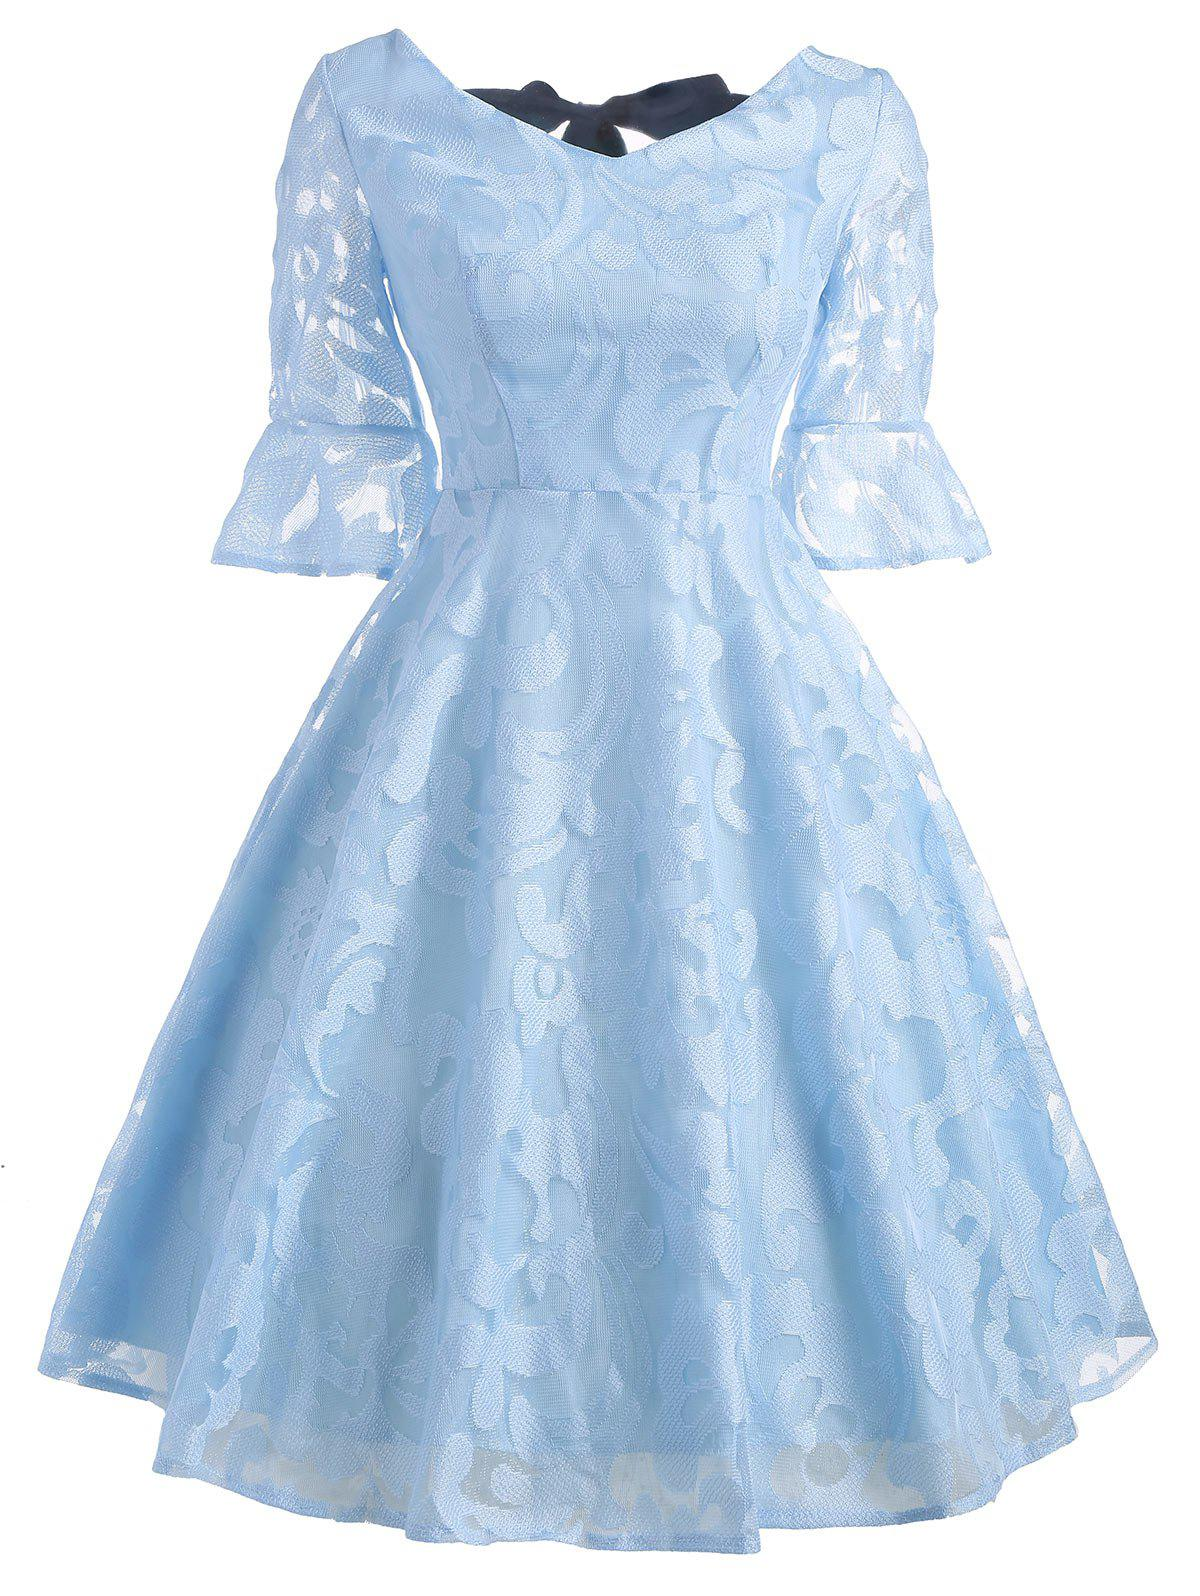 Flare Sleeeve Bowknot Lace DressWOMEN<br><br>Size: S; Color: LIGHT BLUE; Style: Vintage; Material: Cotton,Polyester; Silhouette: A-Line; Dresses Length: Mini; Neckline: V-Neck; Sleeve Length: Half Sleeves; Embellishment: Bowknot,Lace; Pattern Type: Solid; With Belt: No; Season: Fall; Weight: 0.2700kg; Package Contents: 1 x Dress;